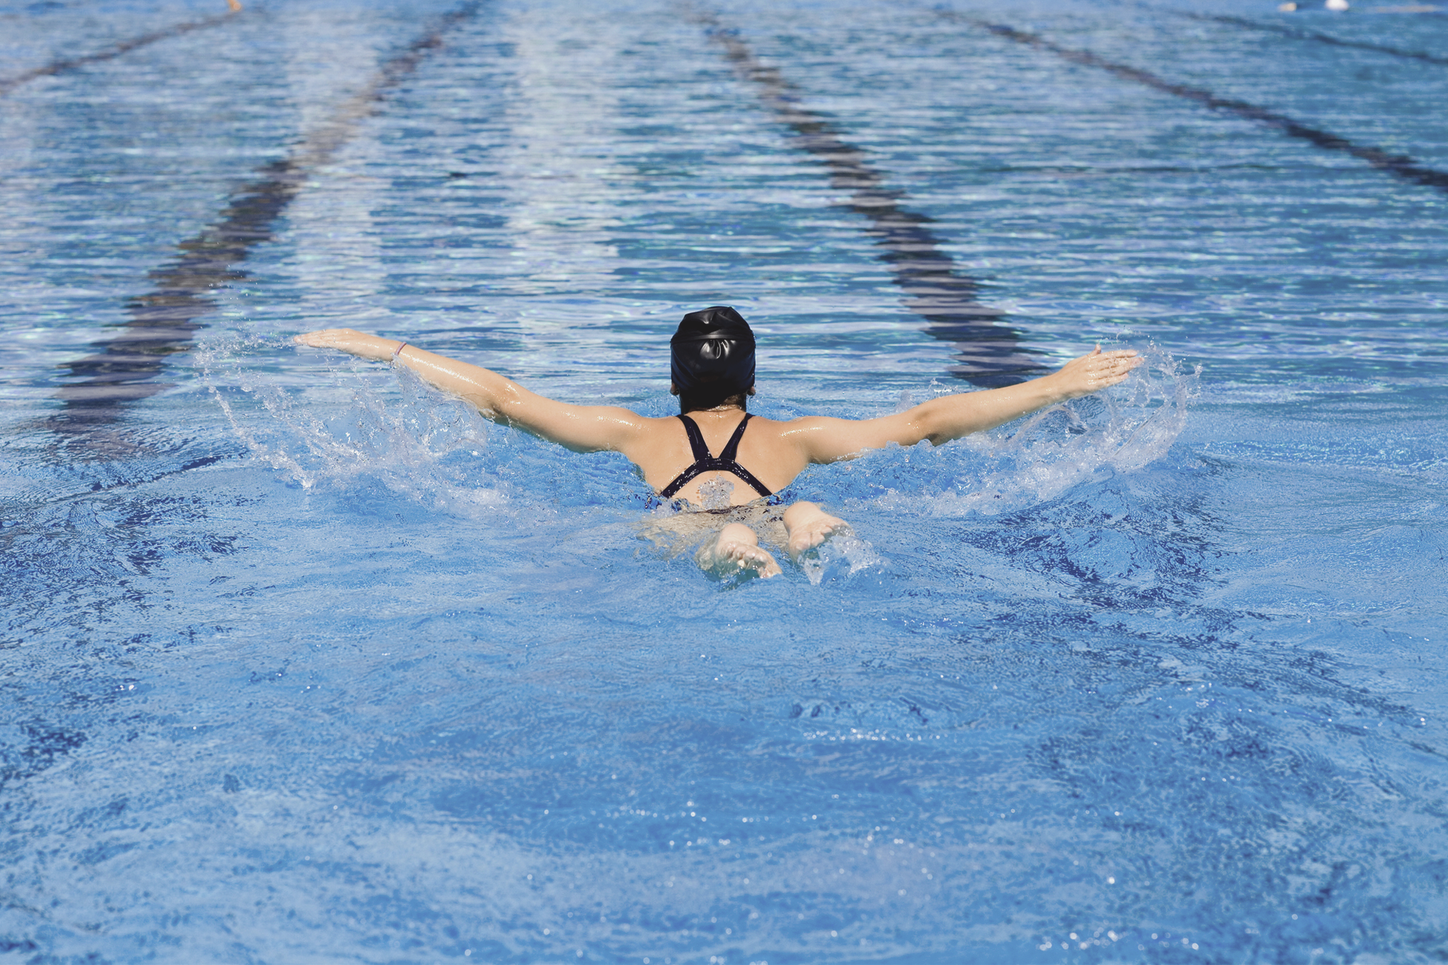 The picture shows a female swimmer in a swimming pool